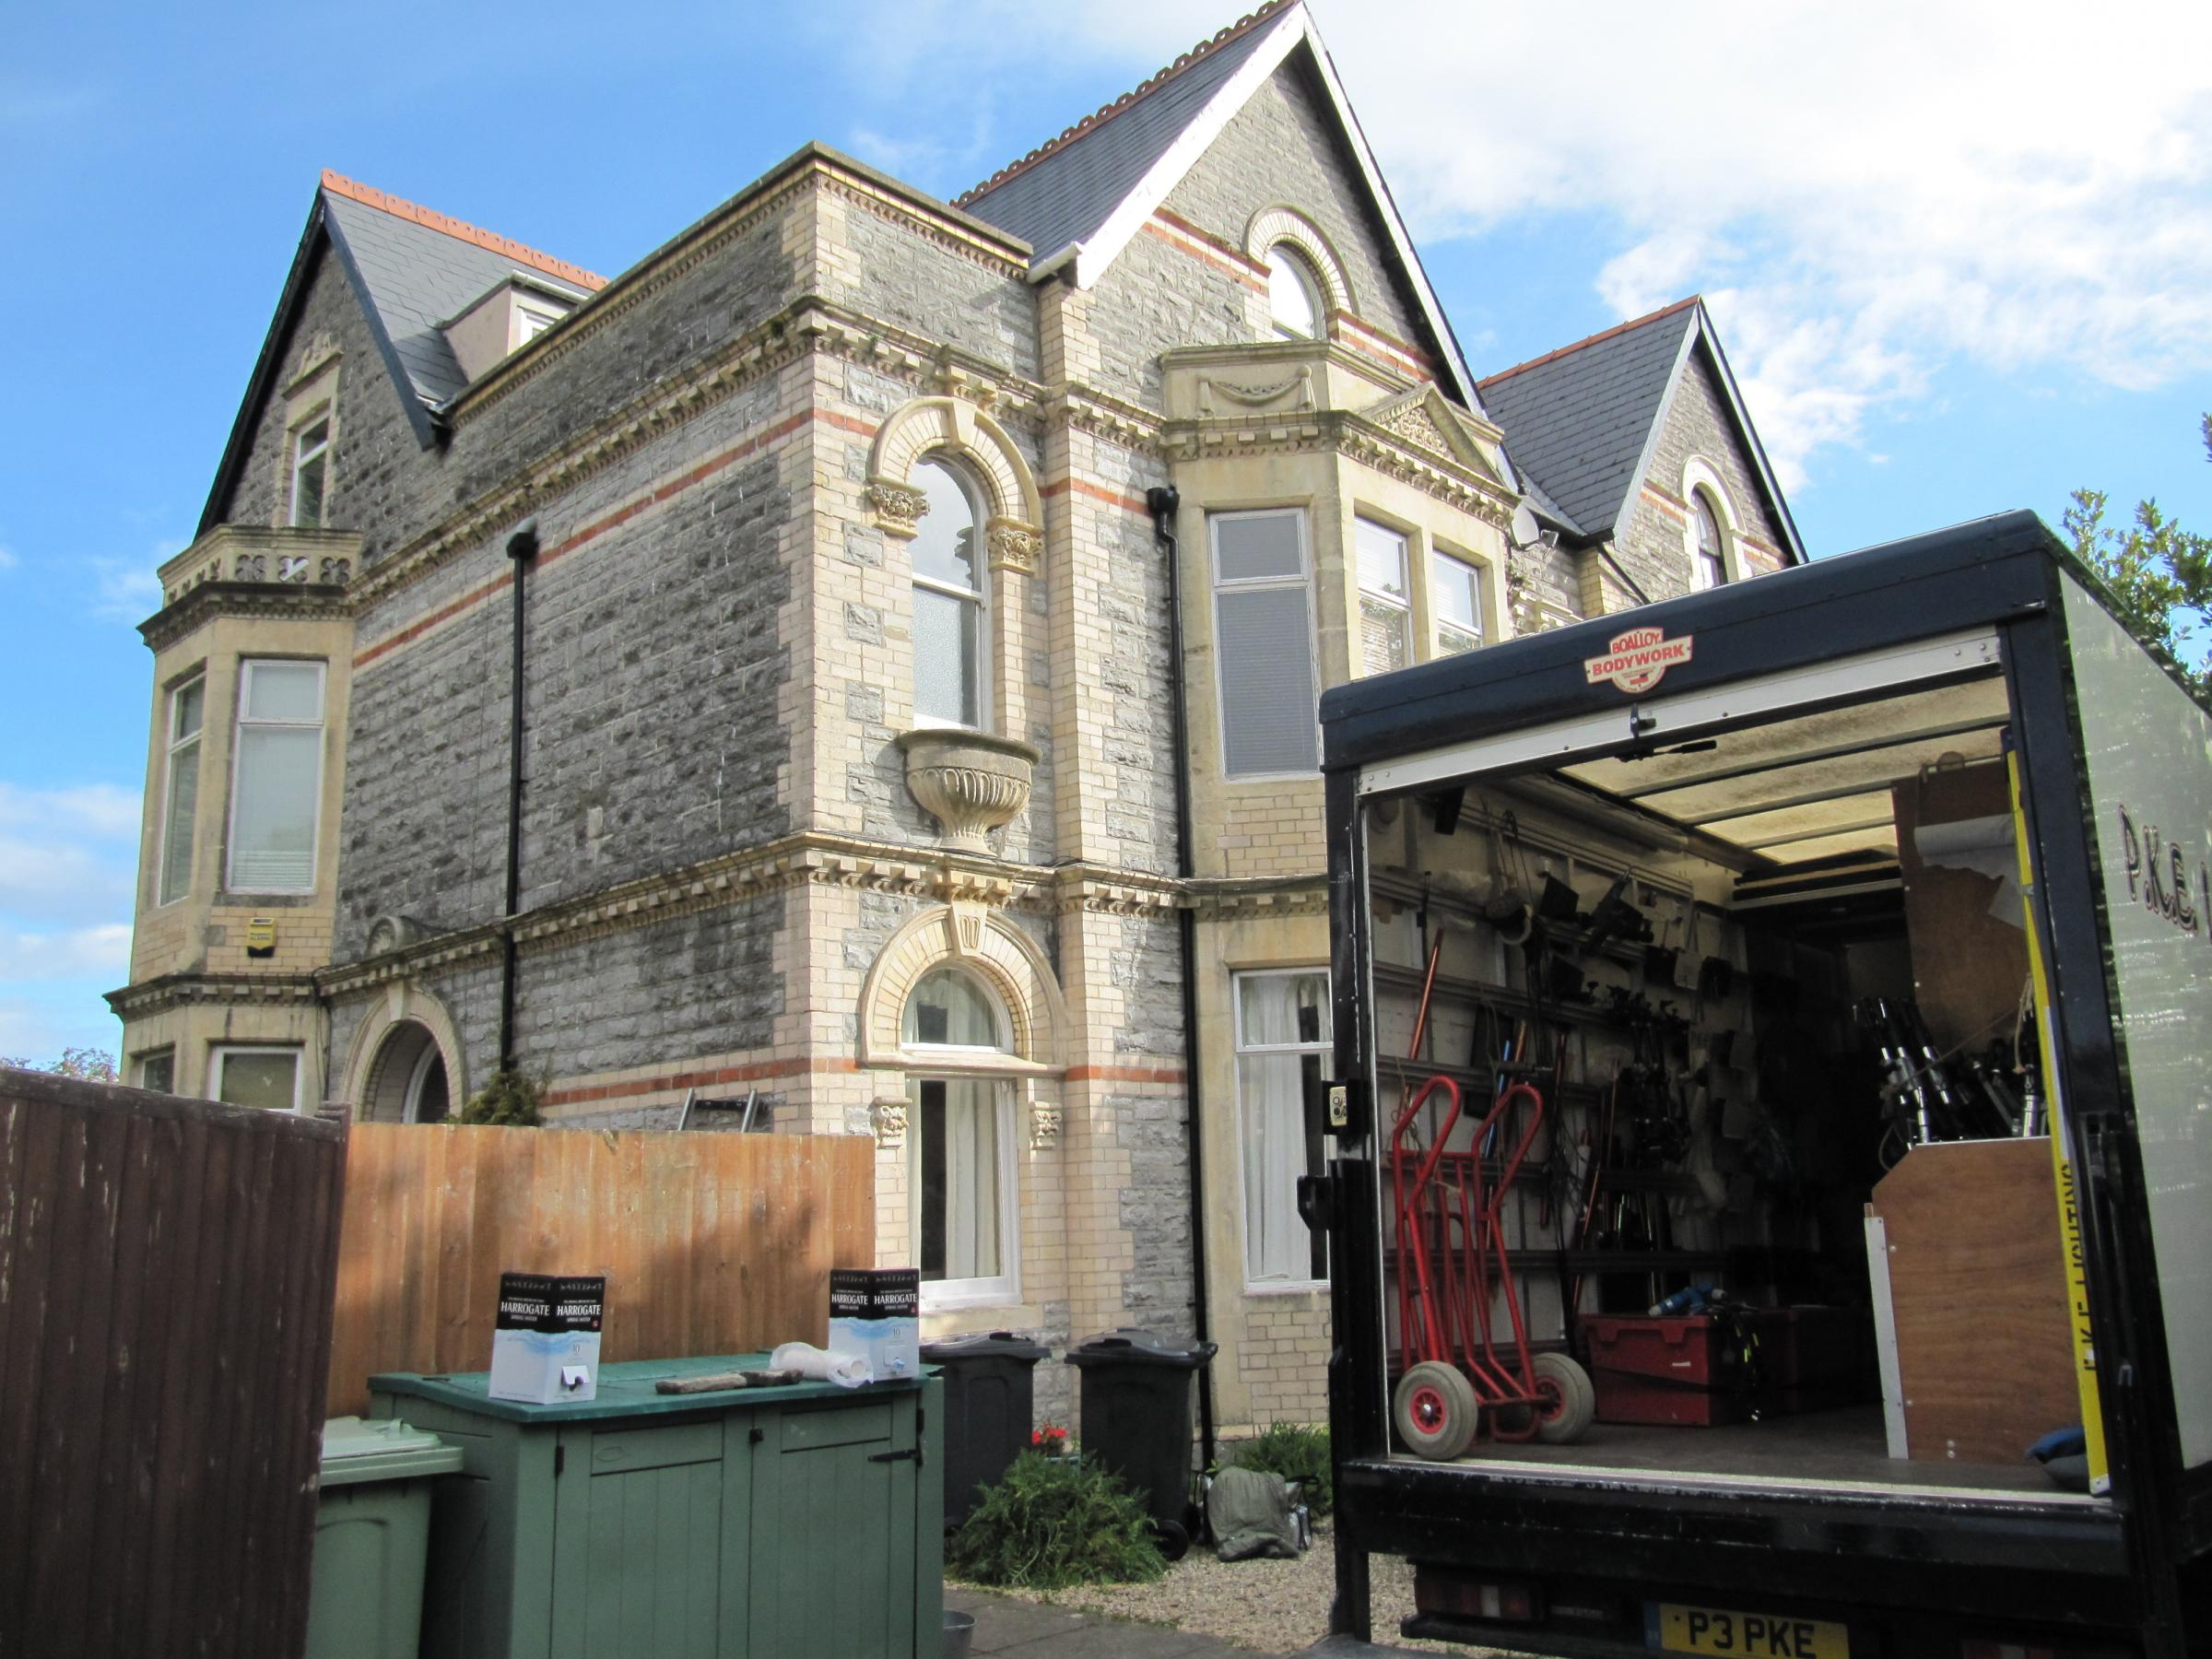 Casualty film crews move into Penarth house